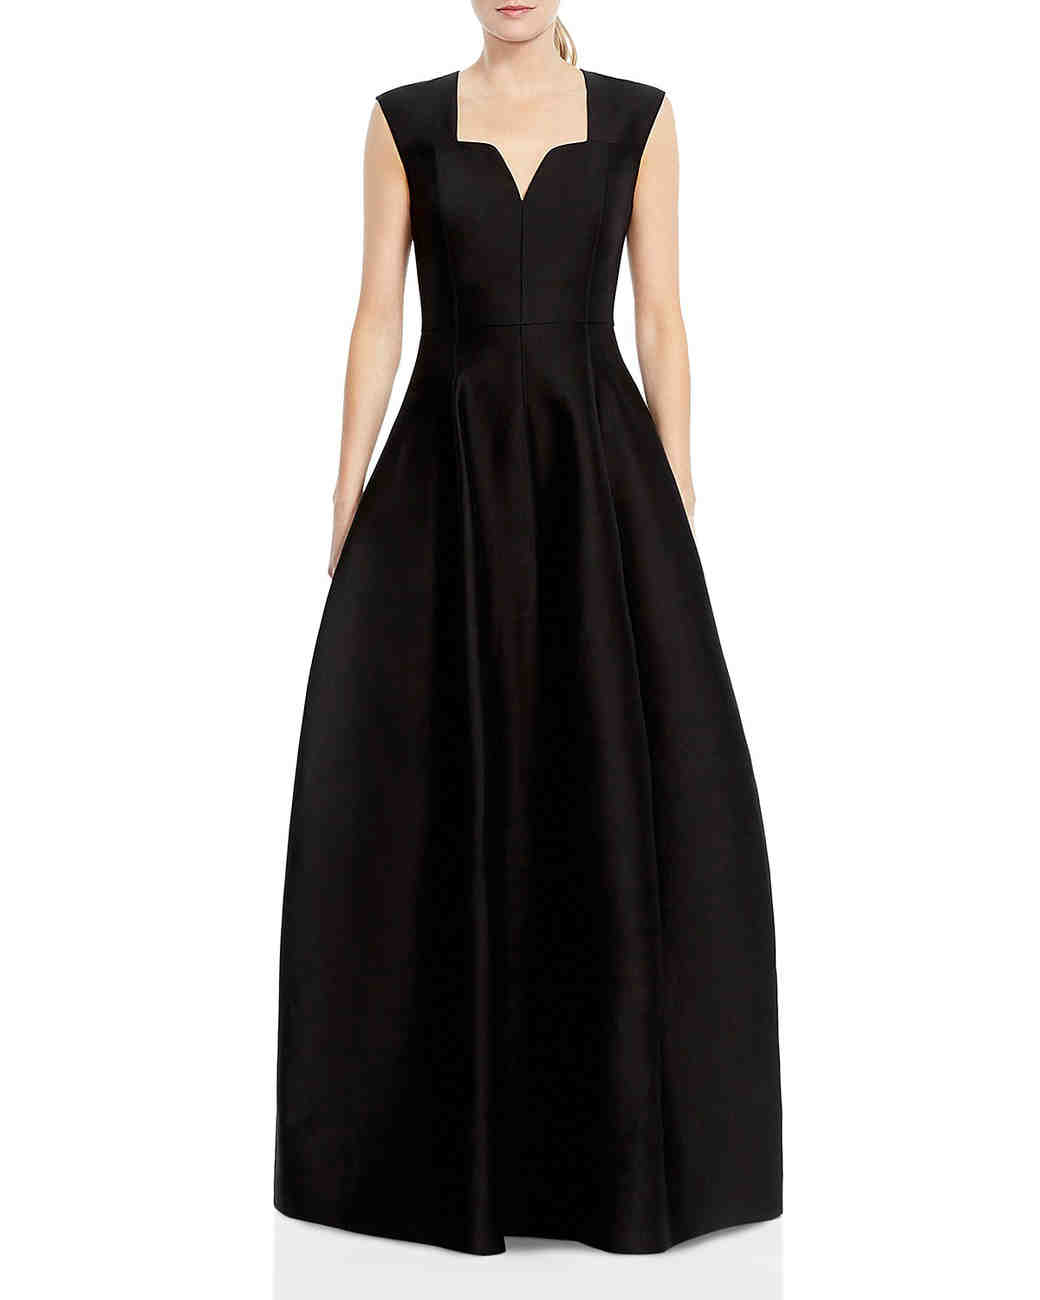 Elegant Black Dresses For The Mothers Of The Bride And